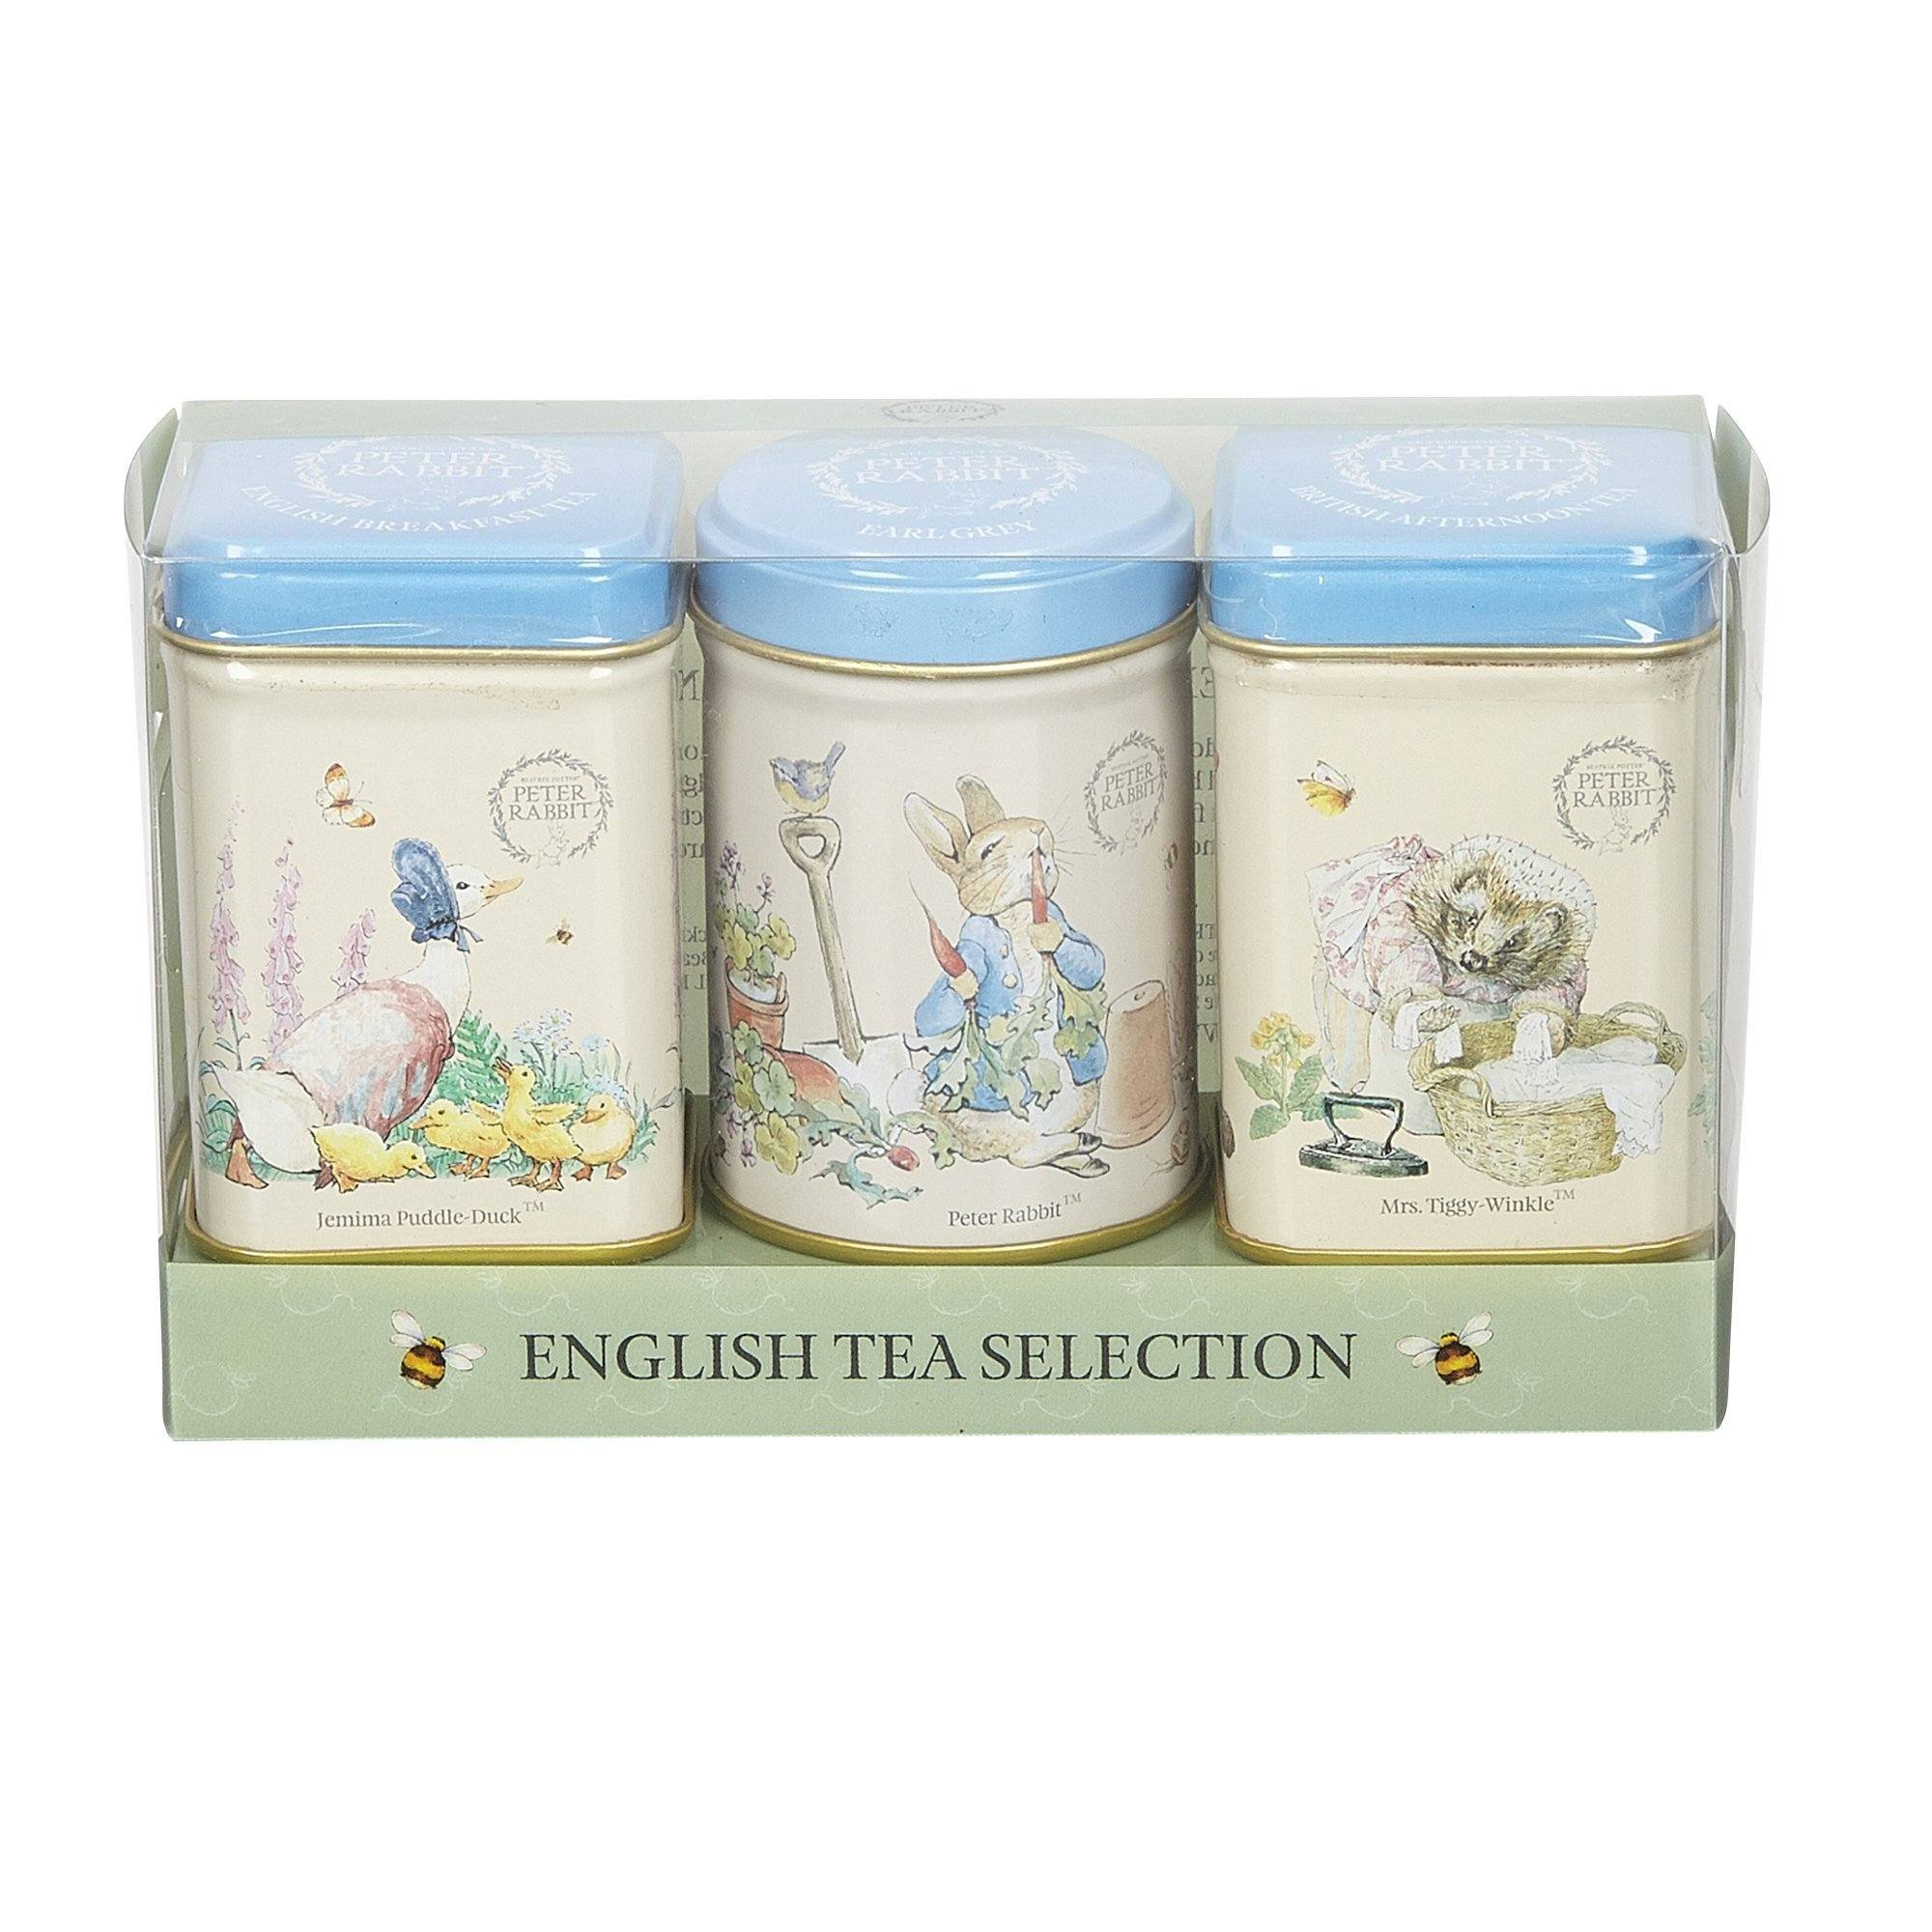 Beatrix Potter Mini Tin Gift Pack, with loose-leaf black tea Black Tea New English Teas